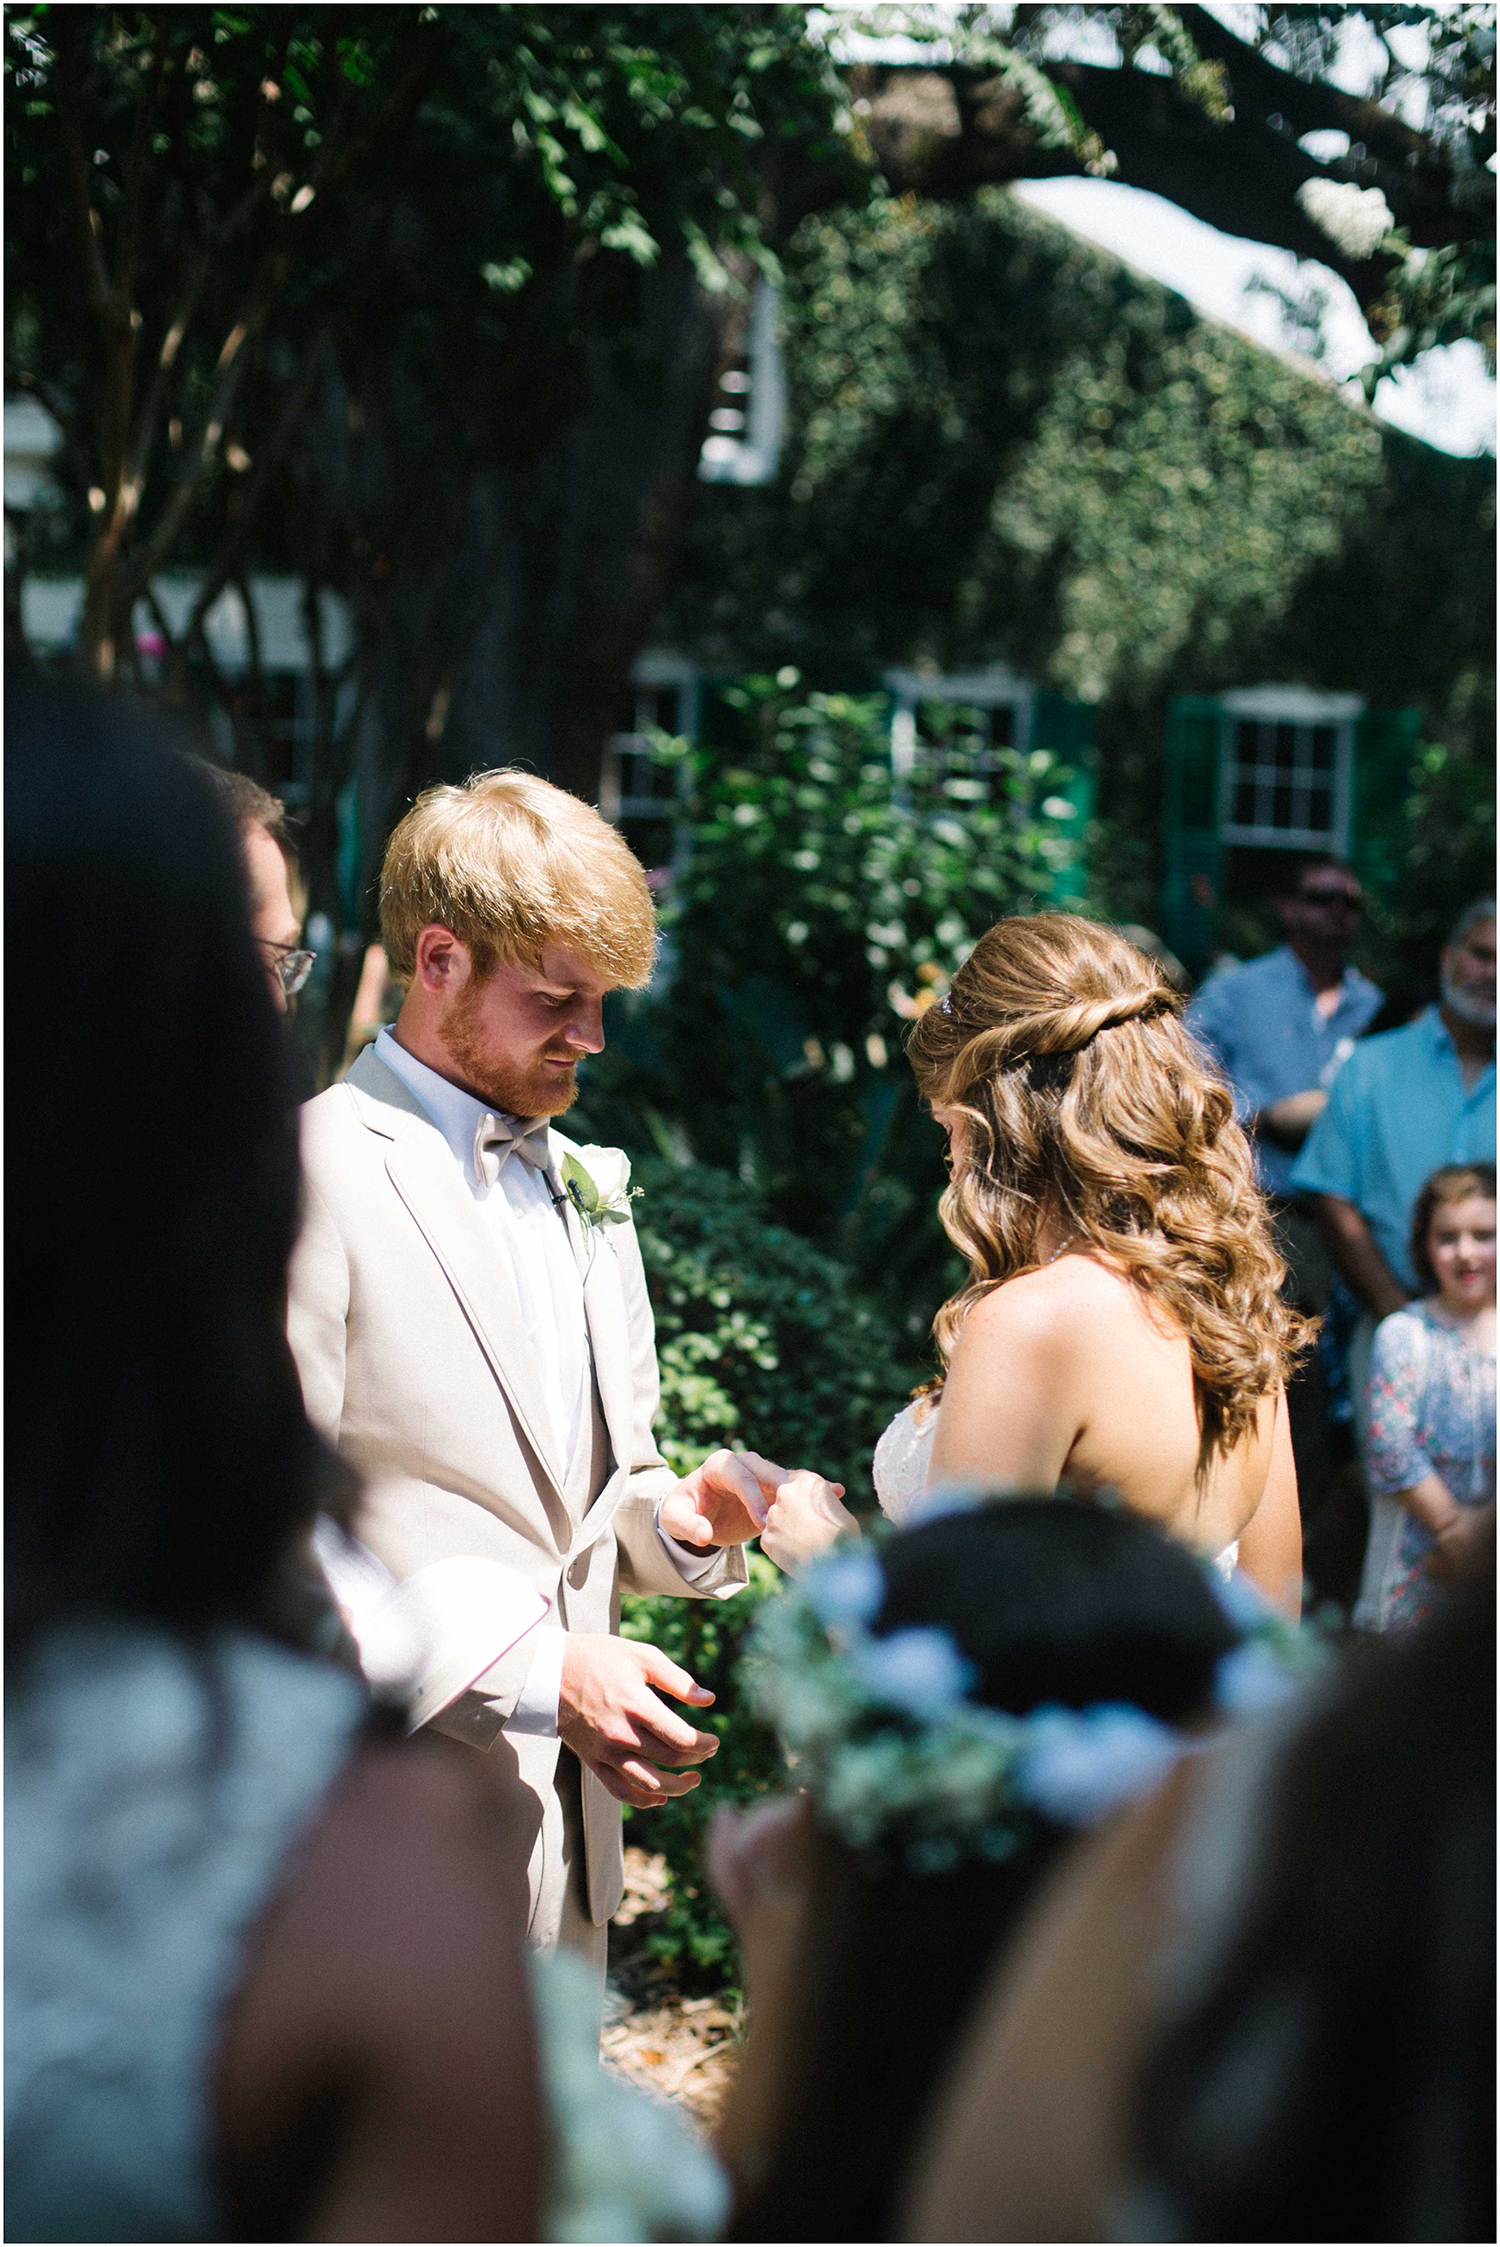 Gulf_Coast_Wedding_Photographer_0015.jpg